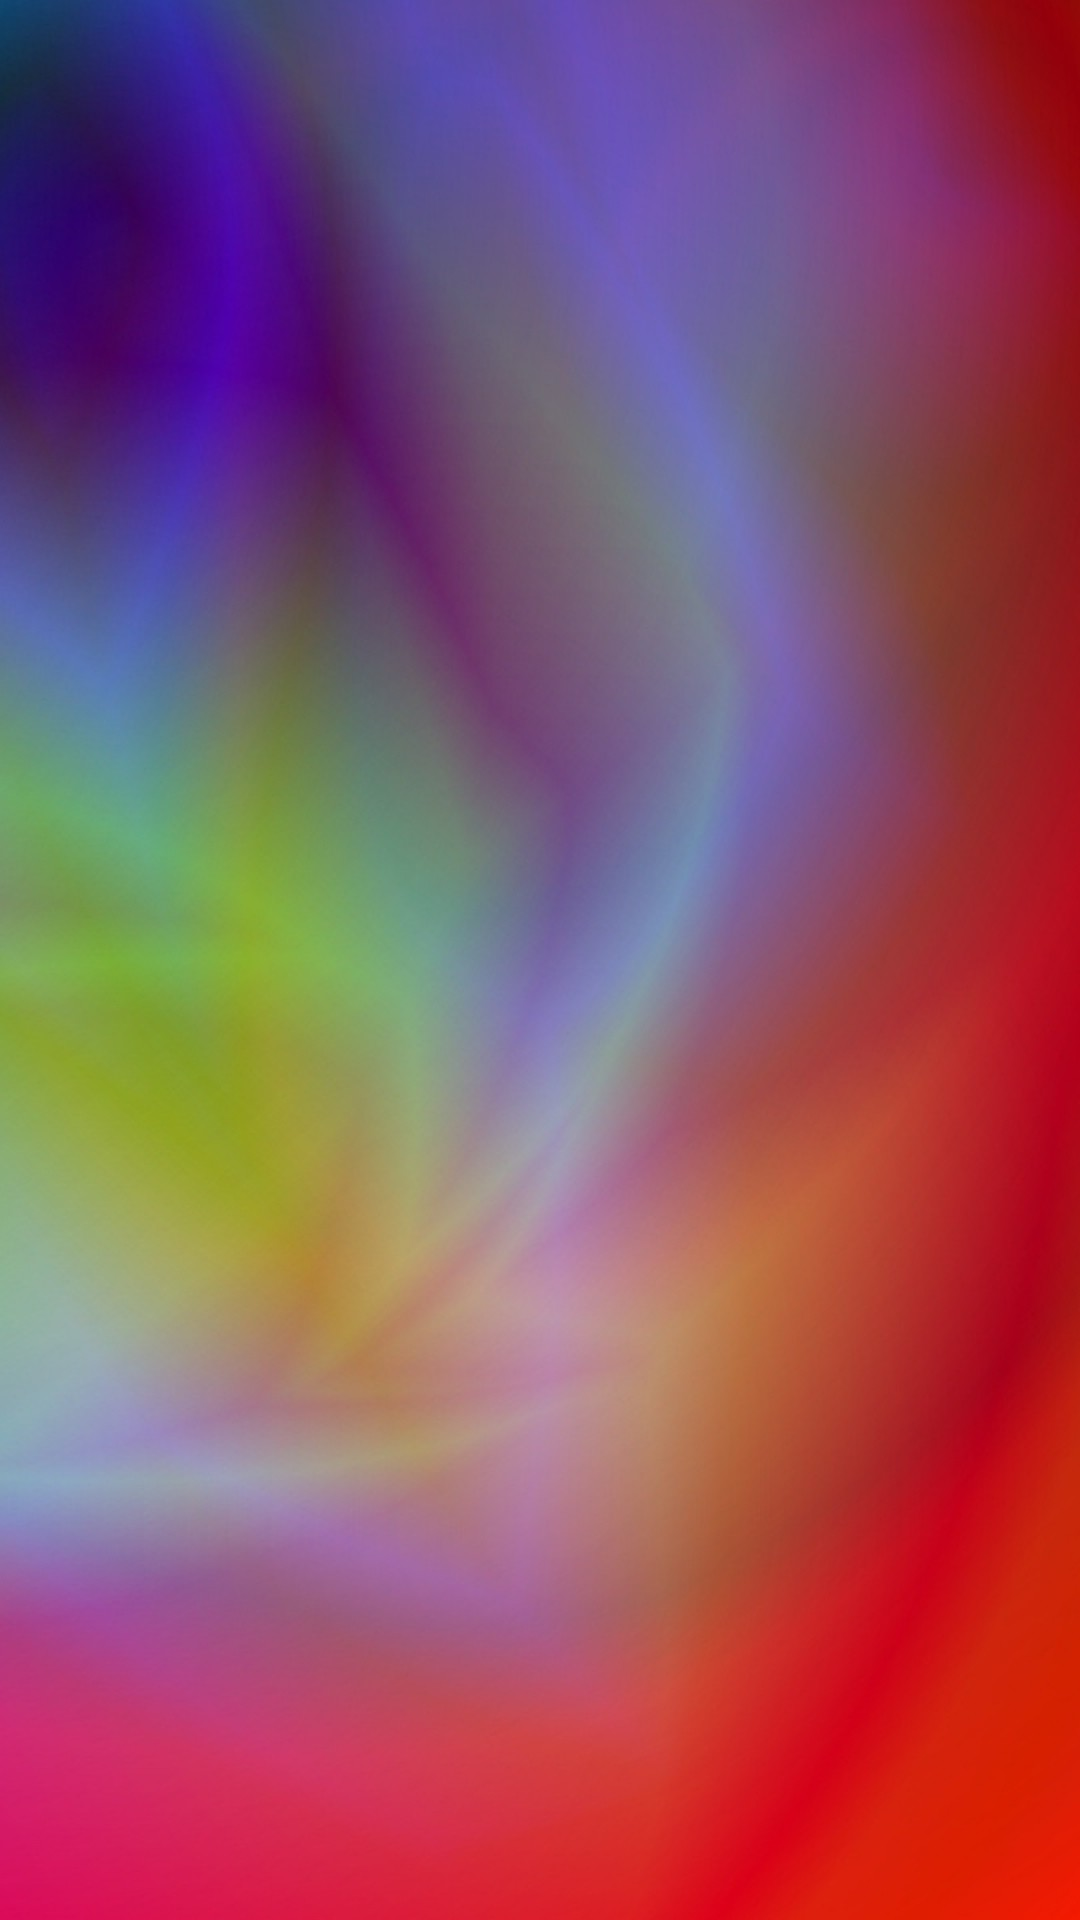 Wallpaper abstract, colorful, illusion, bright